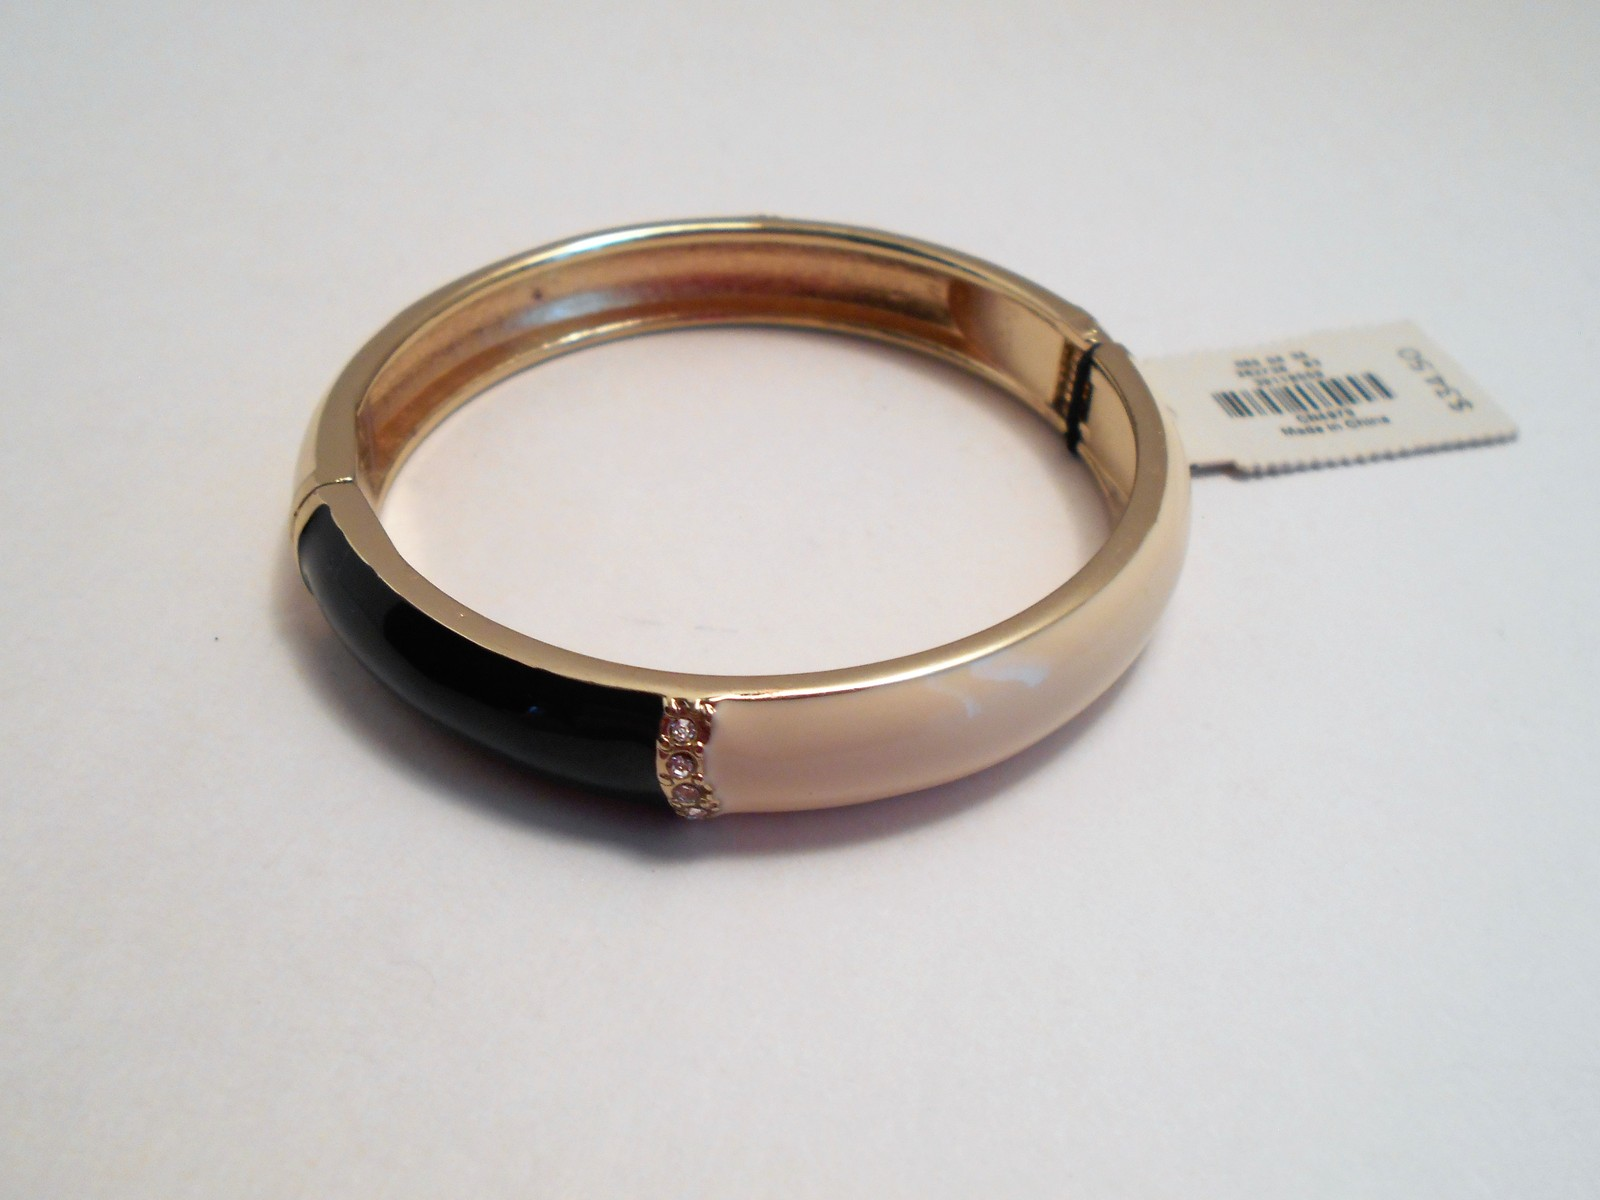 Talbots Navy & Ivory Enamel Rhinestone Bangle Bracelet New With Tags image 5